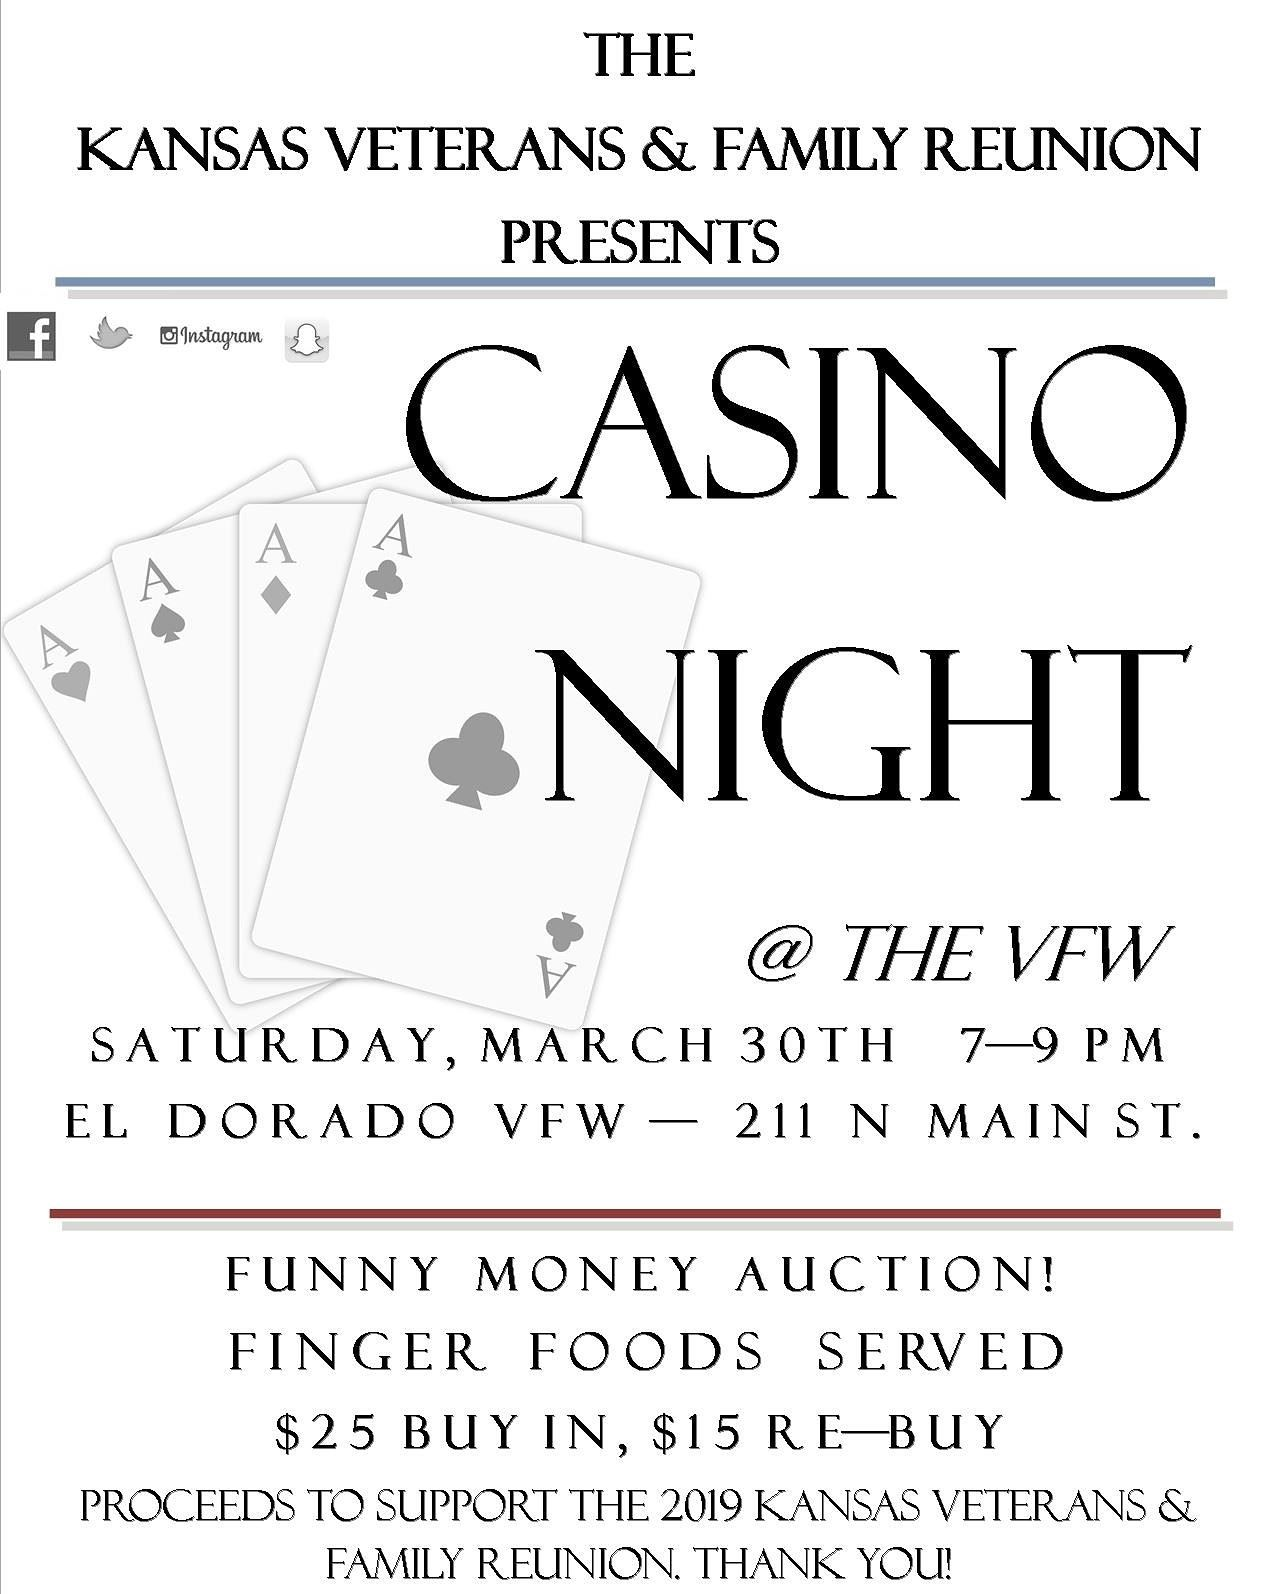 Casino Night - KS Veterans and Family Reunion